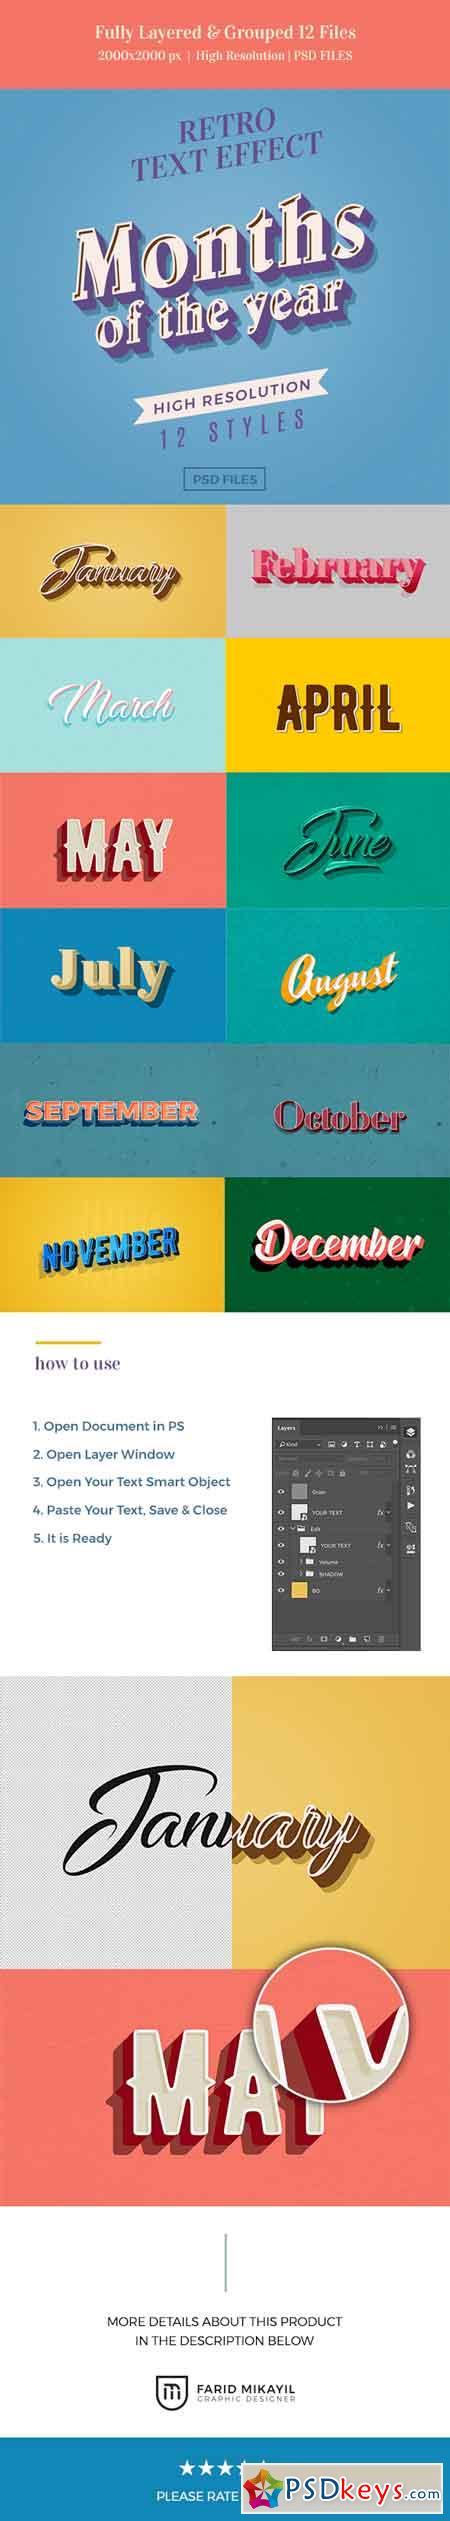 Months of the Year Retro Text Effects 23086037